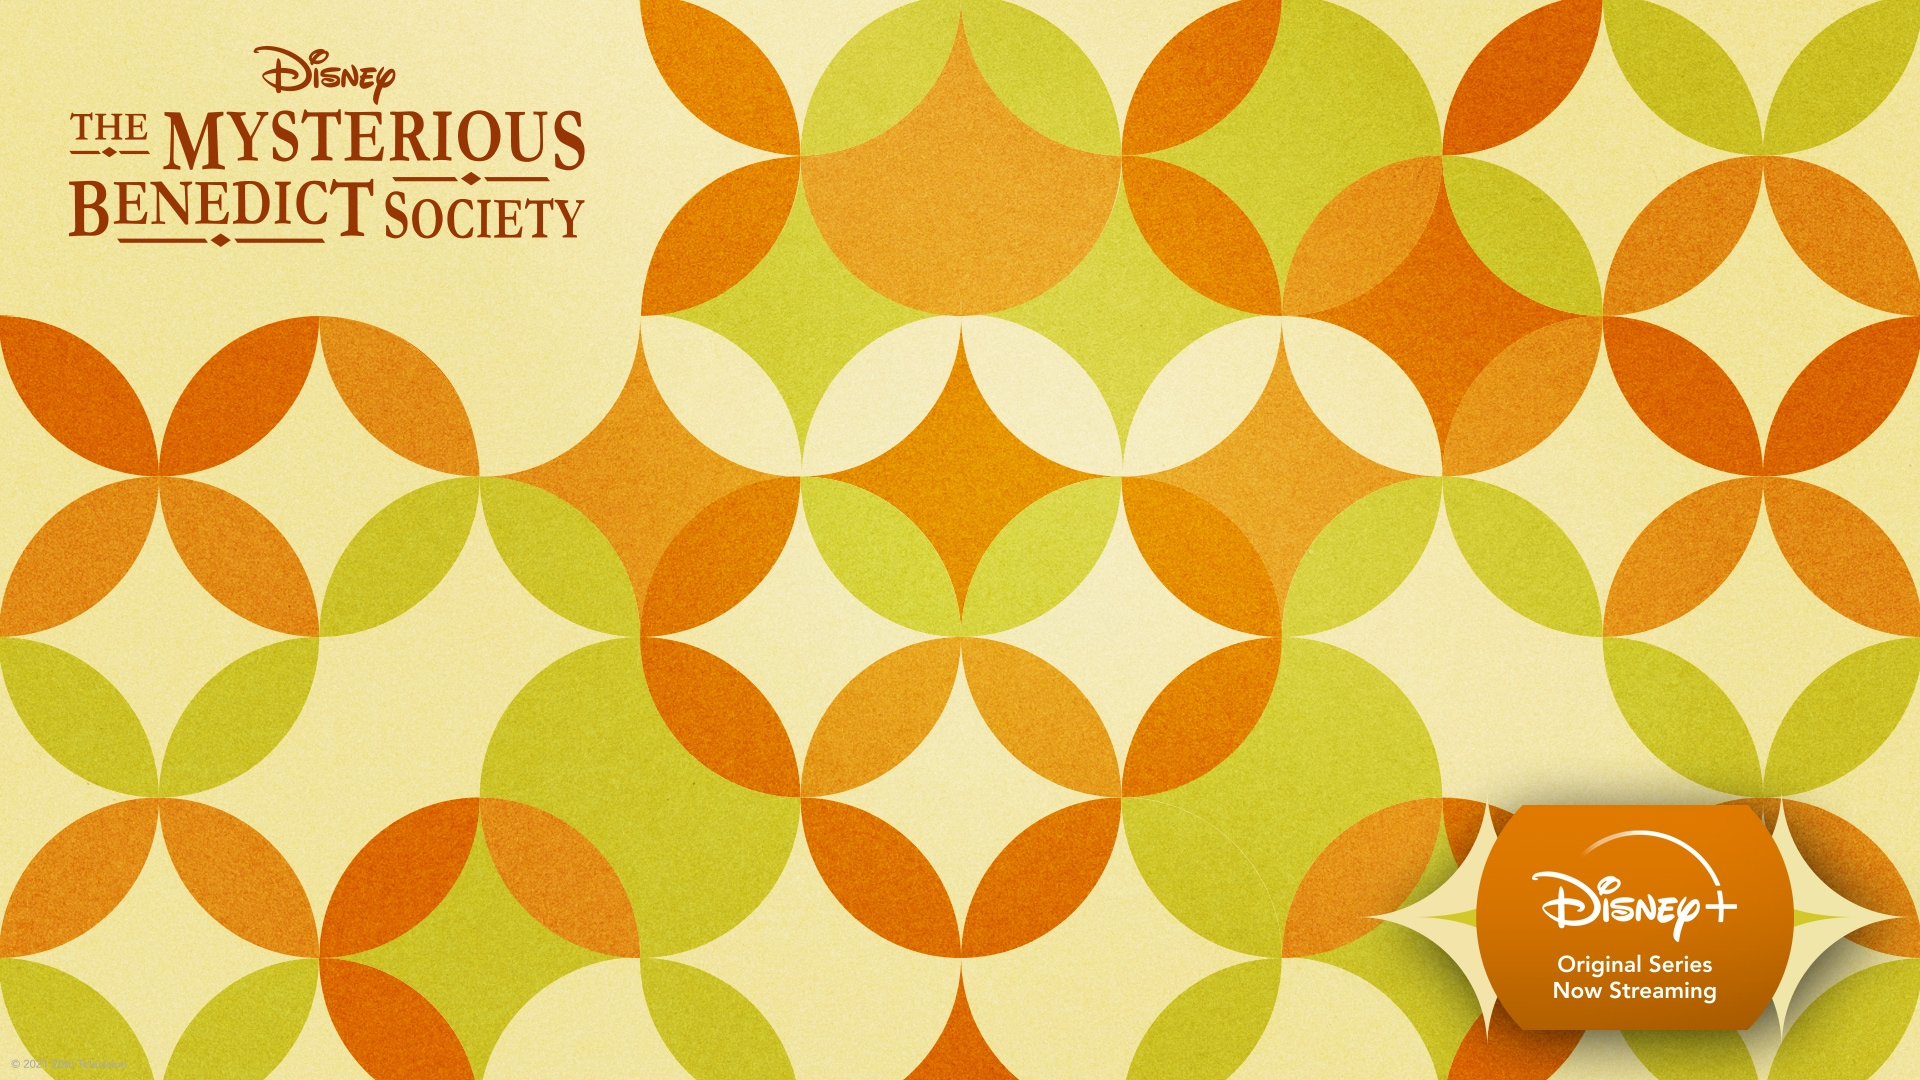 The Mysterious Benedict Society Background